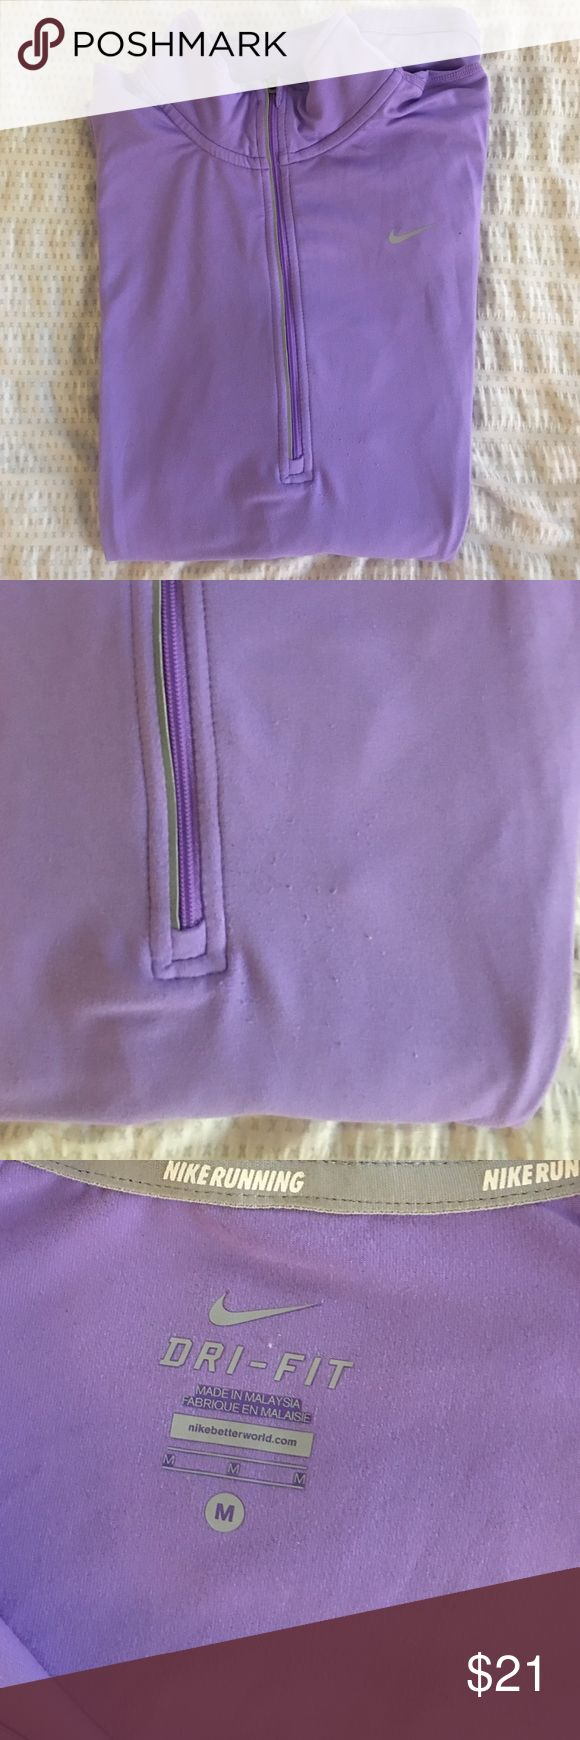 Nike pullover (lilac/light purple) Almost new Nike women's zip-up pullover, small pilling (as seen) otherwise perfect condition. Nike Tops Sweatshirts & Hoodies